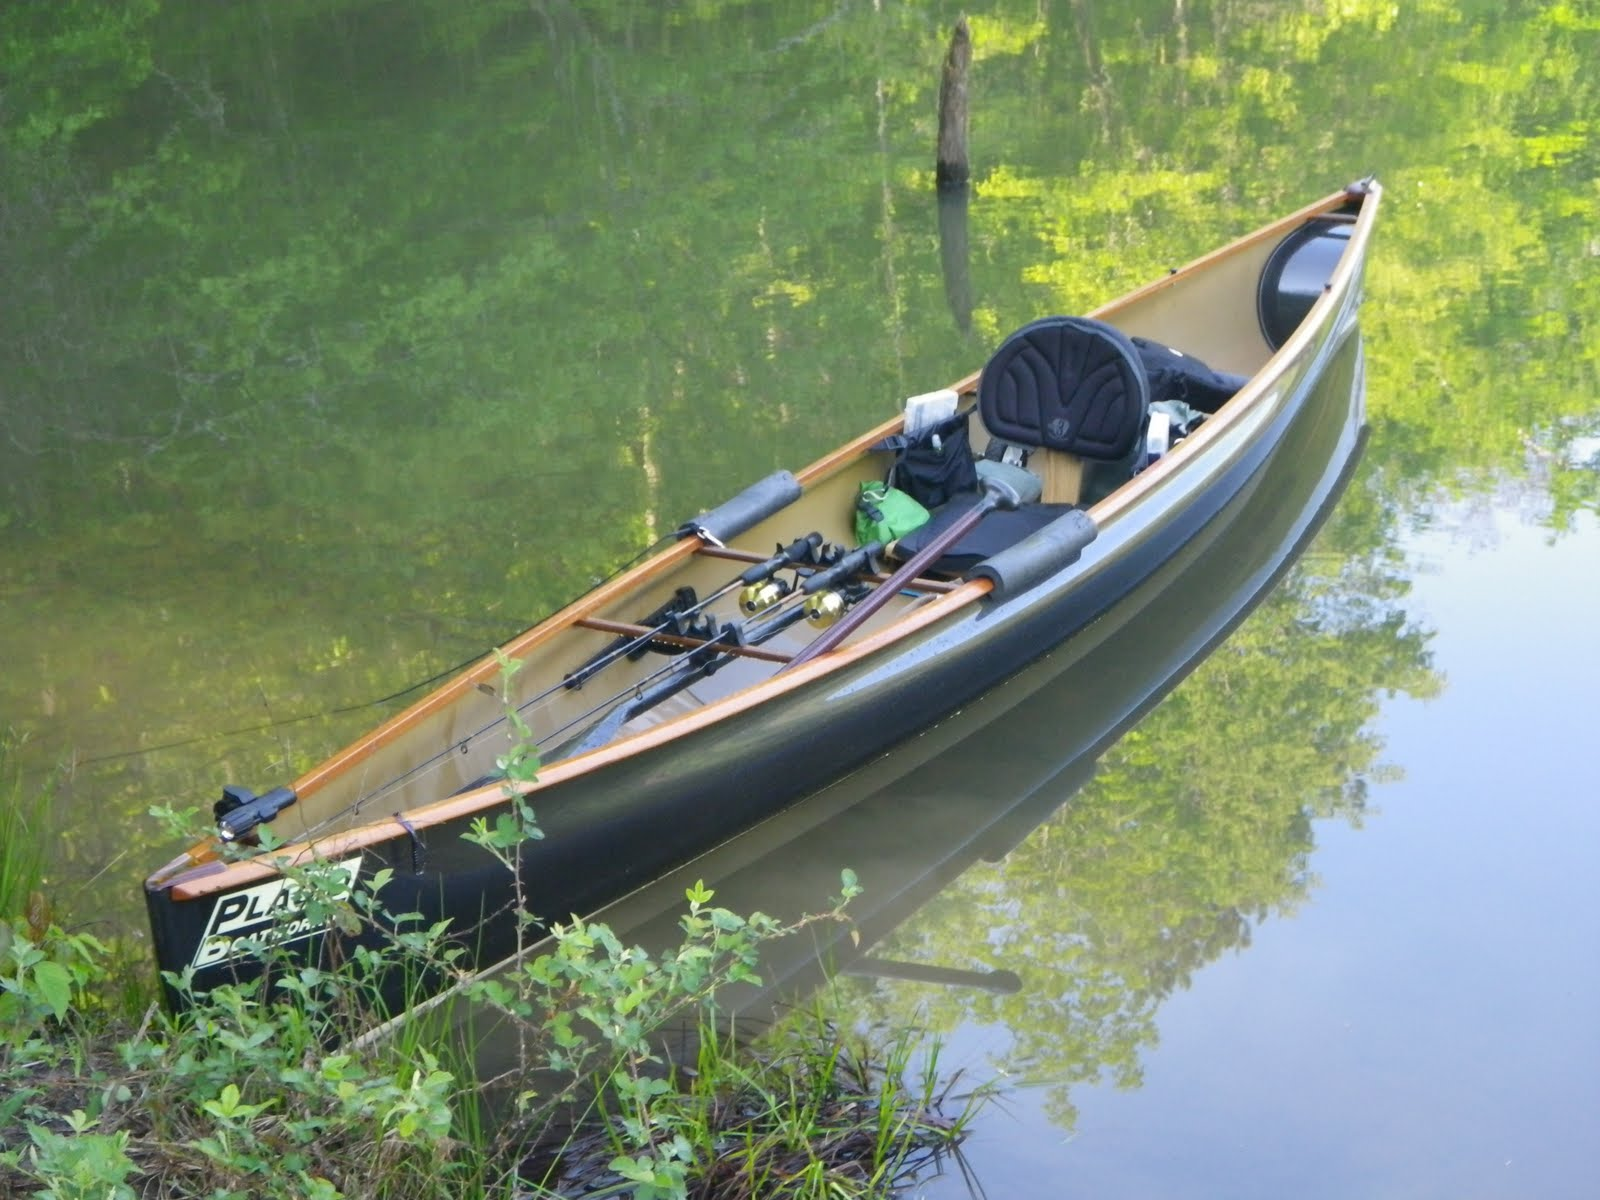 placid boatworks rapidfire canoe rigged for fishing in wv